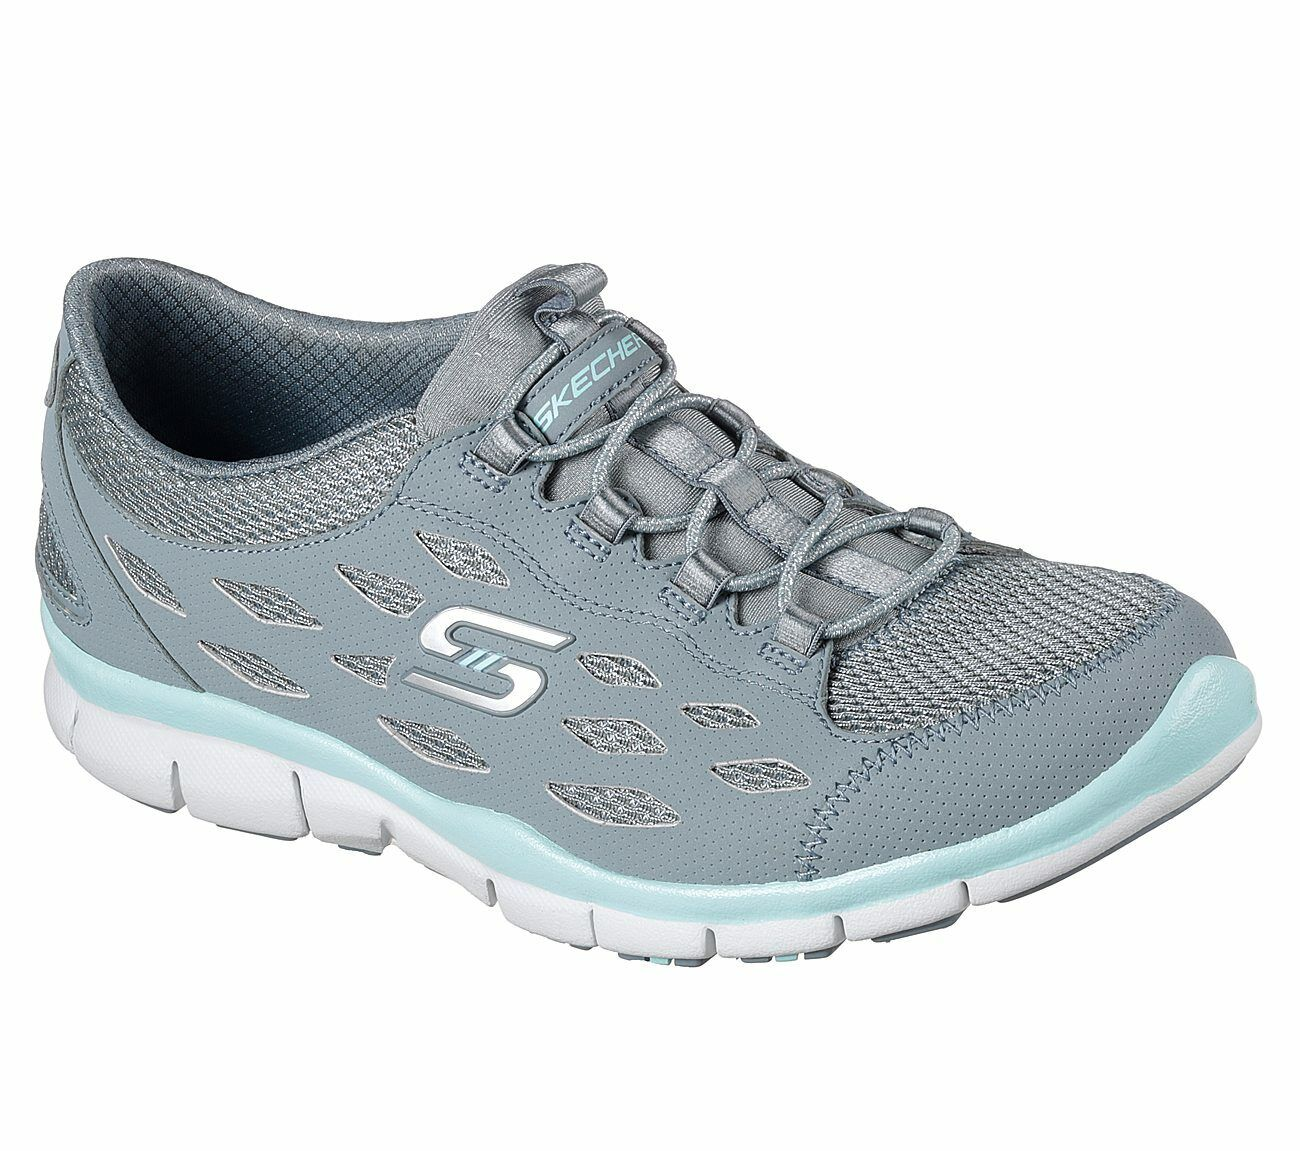 NEU SKECHERS Damen Sneakers GRATIS BREEZY CITY Blau | eBay cPSX2